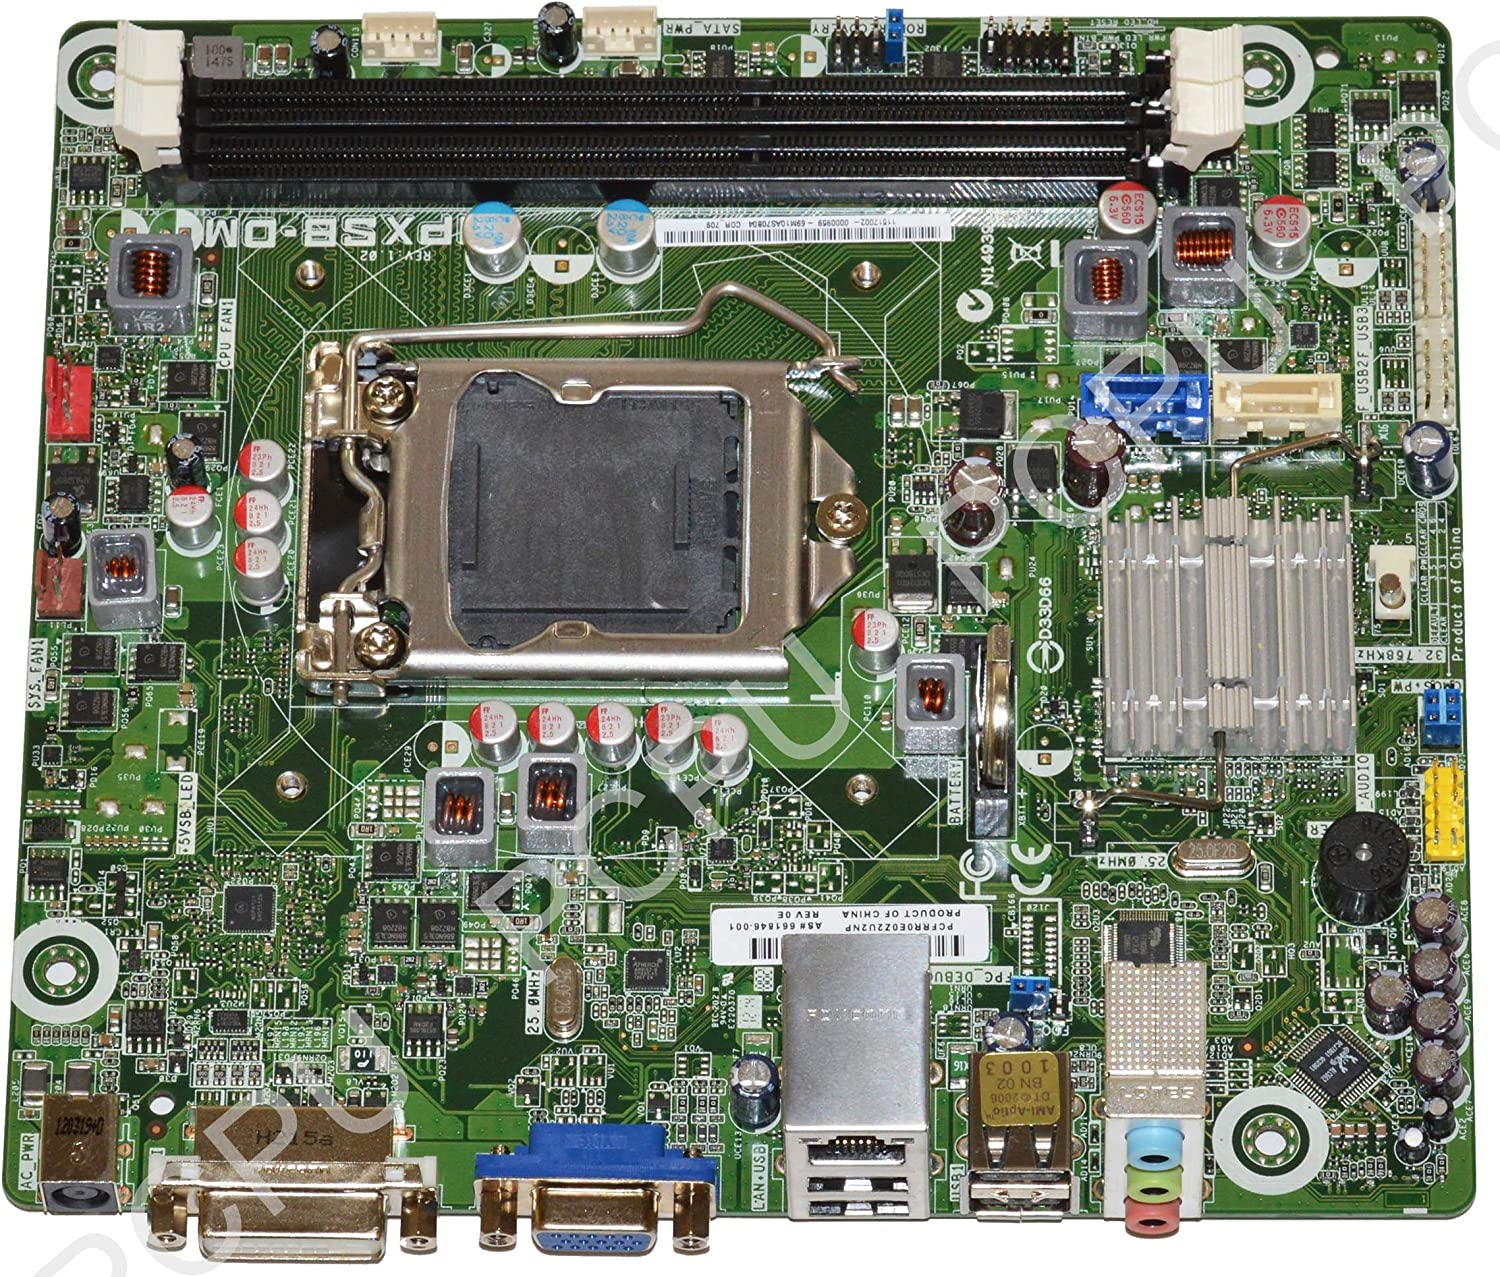 661846-001 HP Cork2 Intel Desktop Motherboard s115X